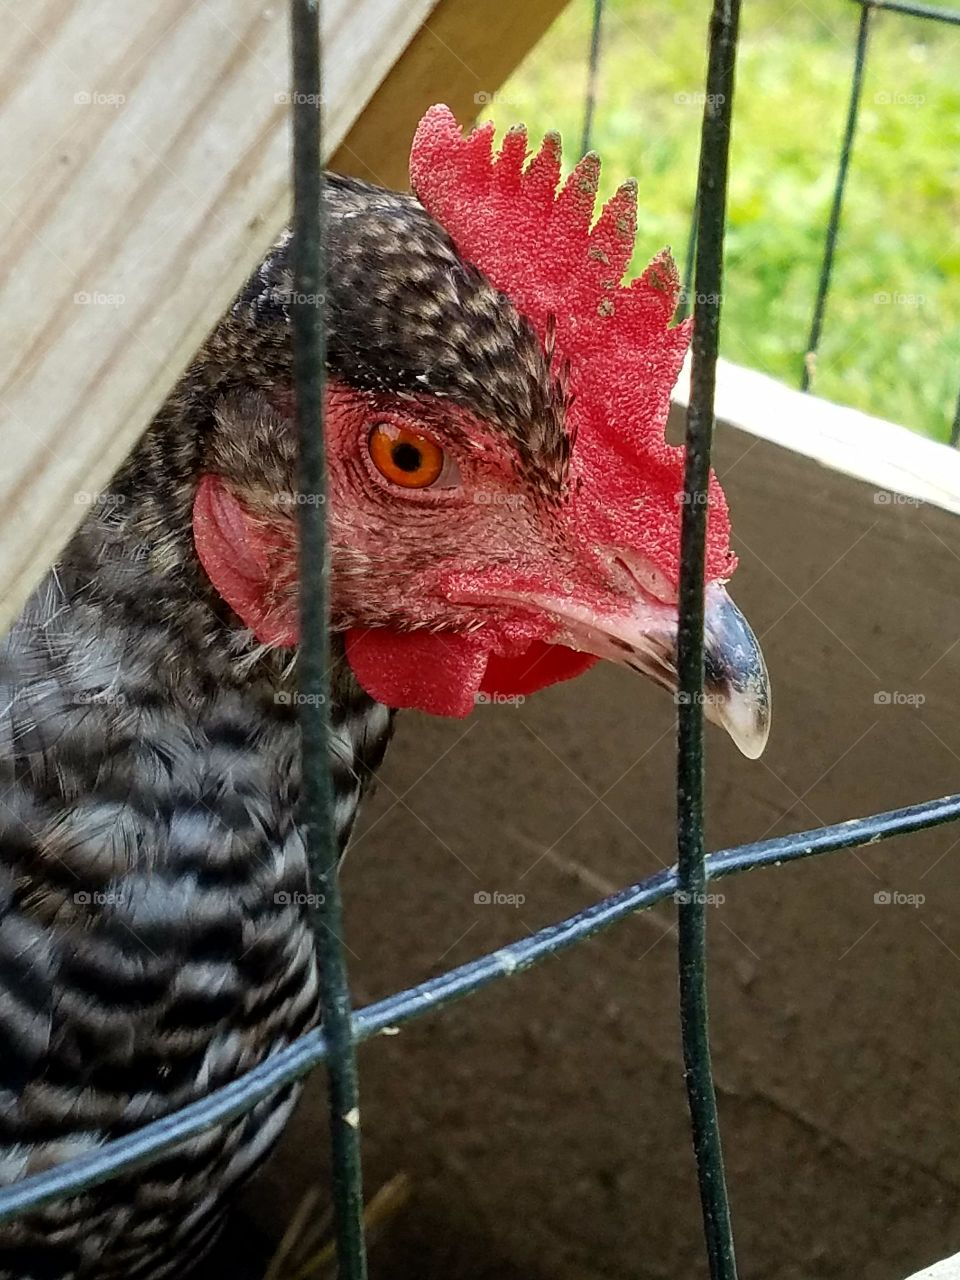 close-up of hen in its pen, looking through wires